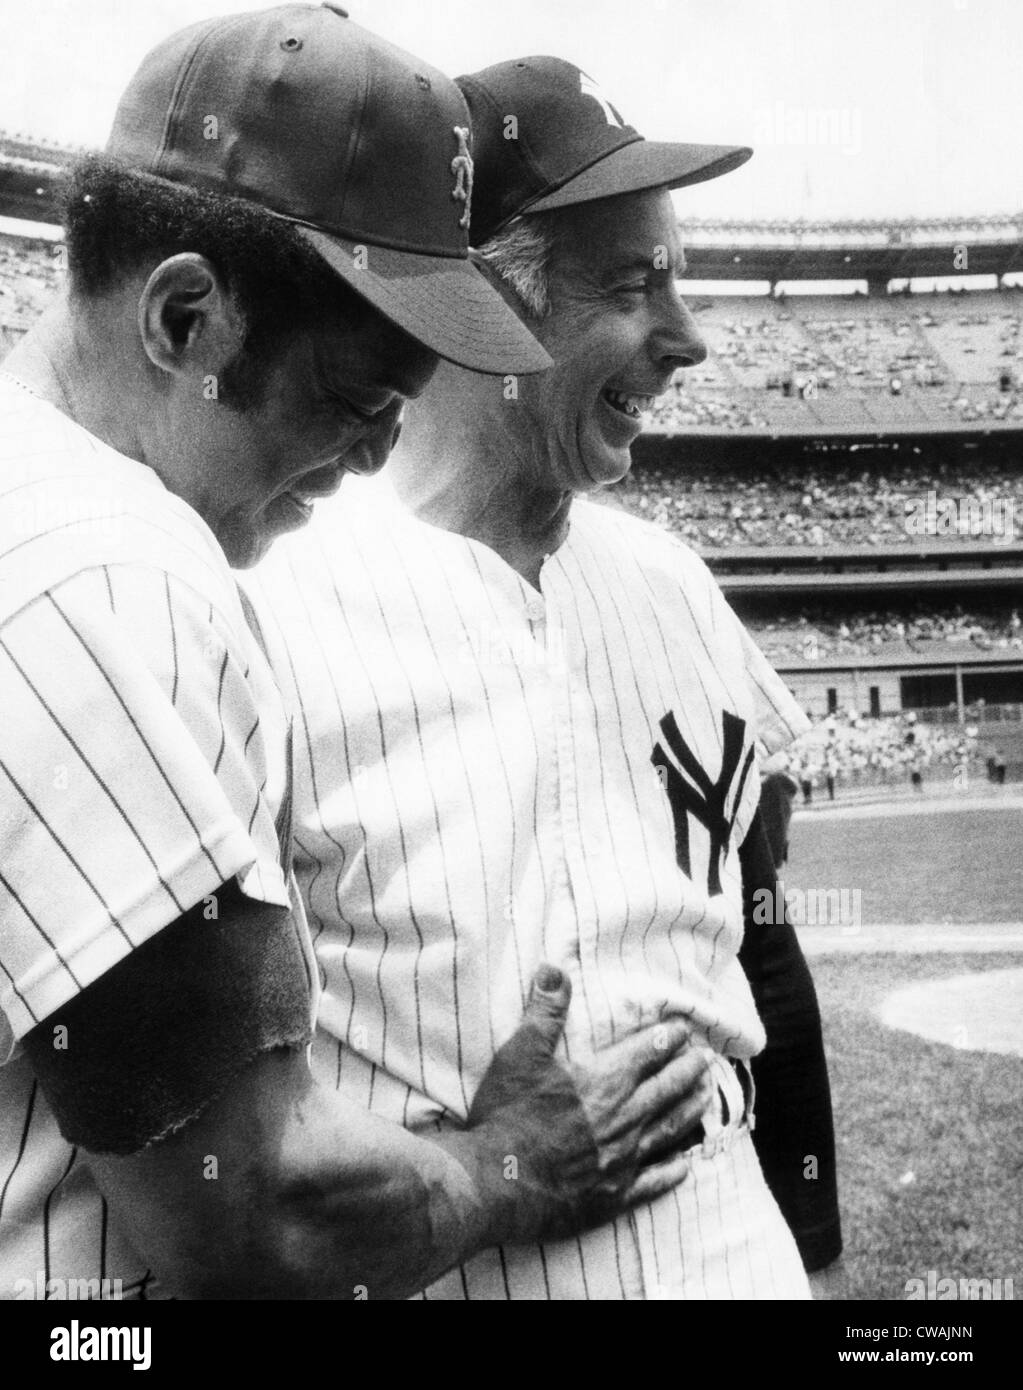 Willie Mays and Joe DiMaggio at Shea Stadium, 1973. Courtesy: CSU Archives/Everett Collection - Stock Image